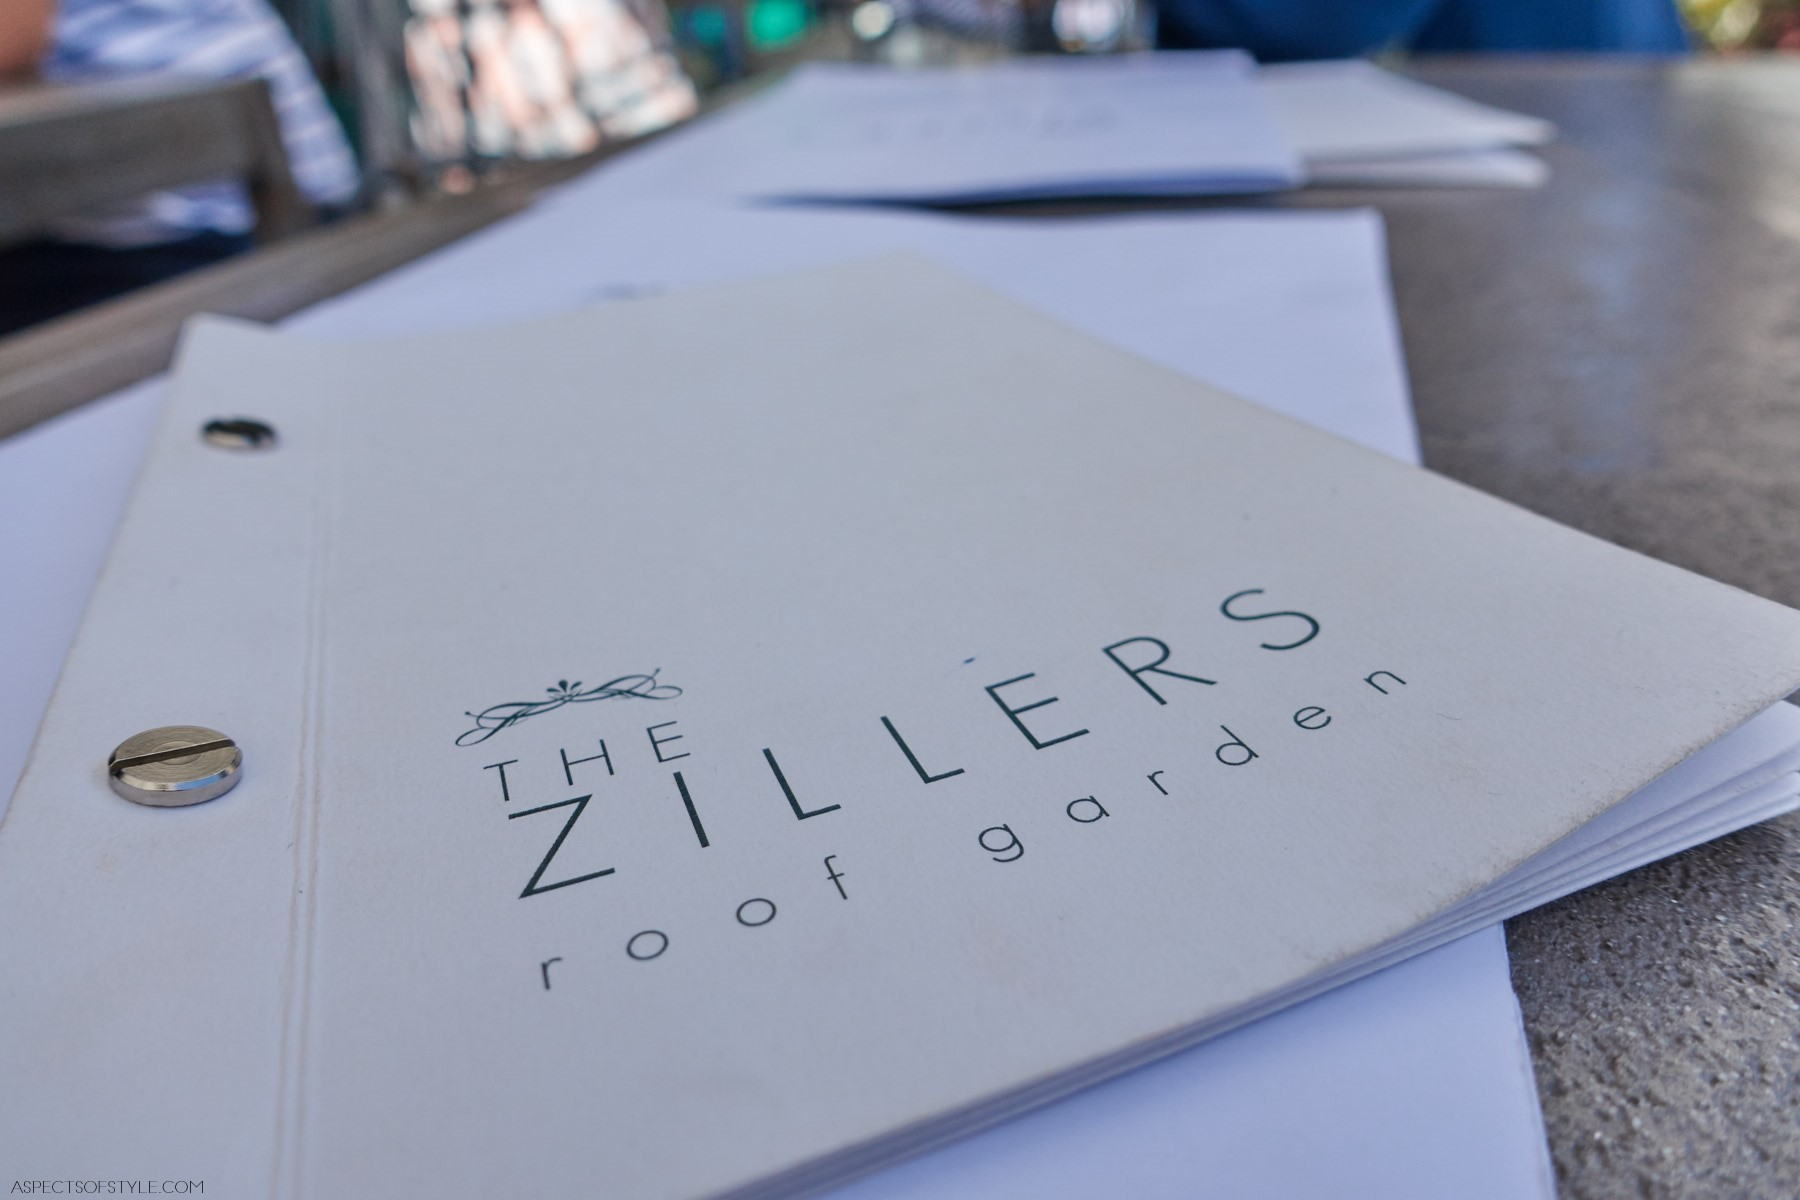 The Zillers Roof Garden Athens Aspects Of Style